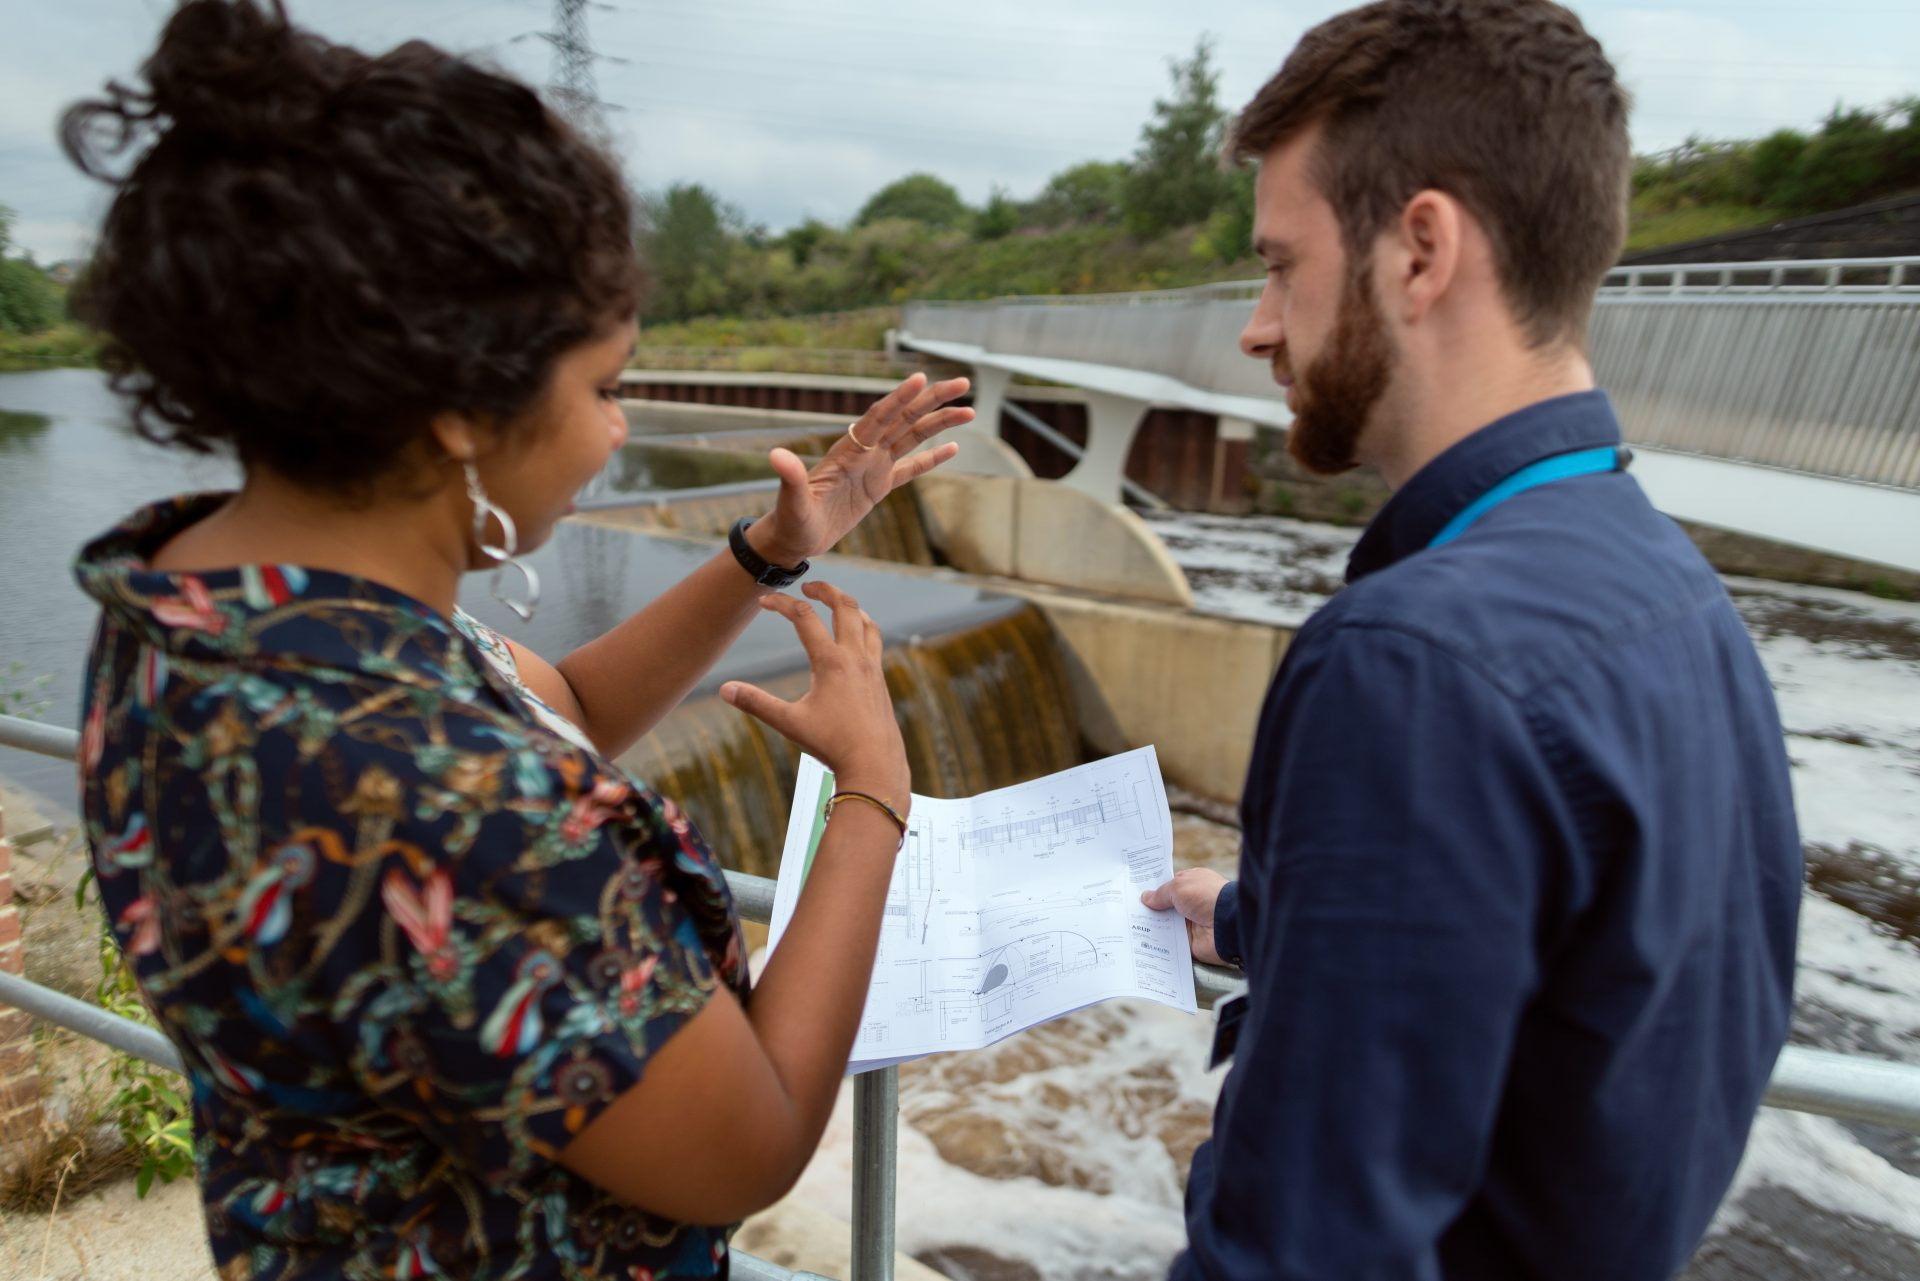 Two people look at schematics in front of a dam